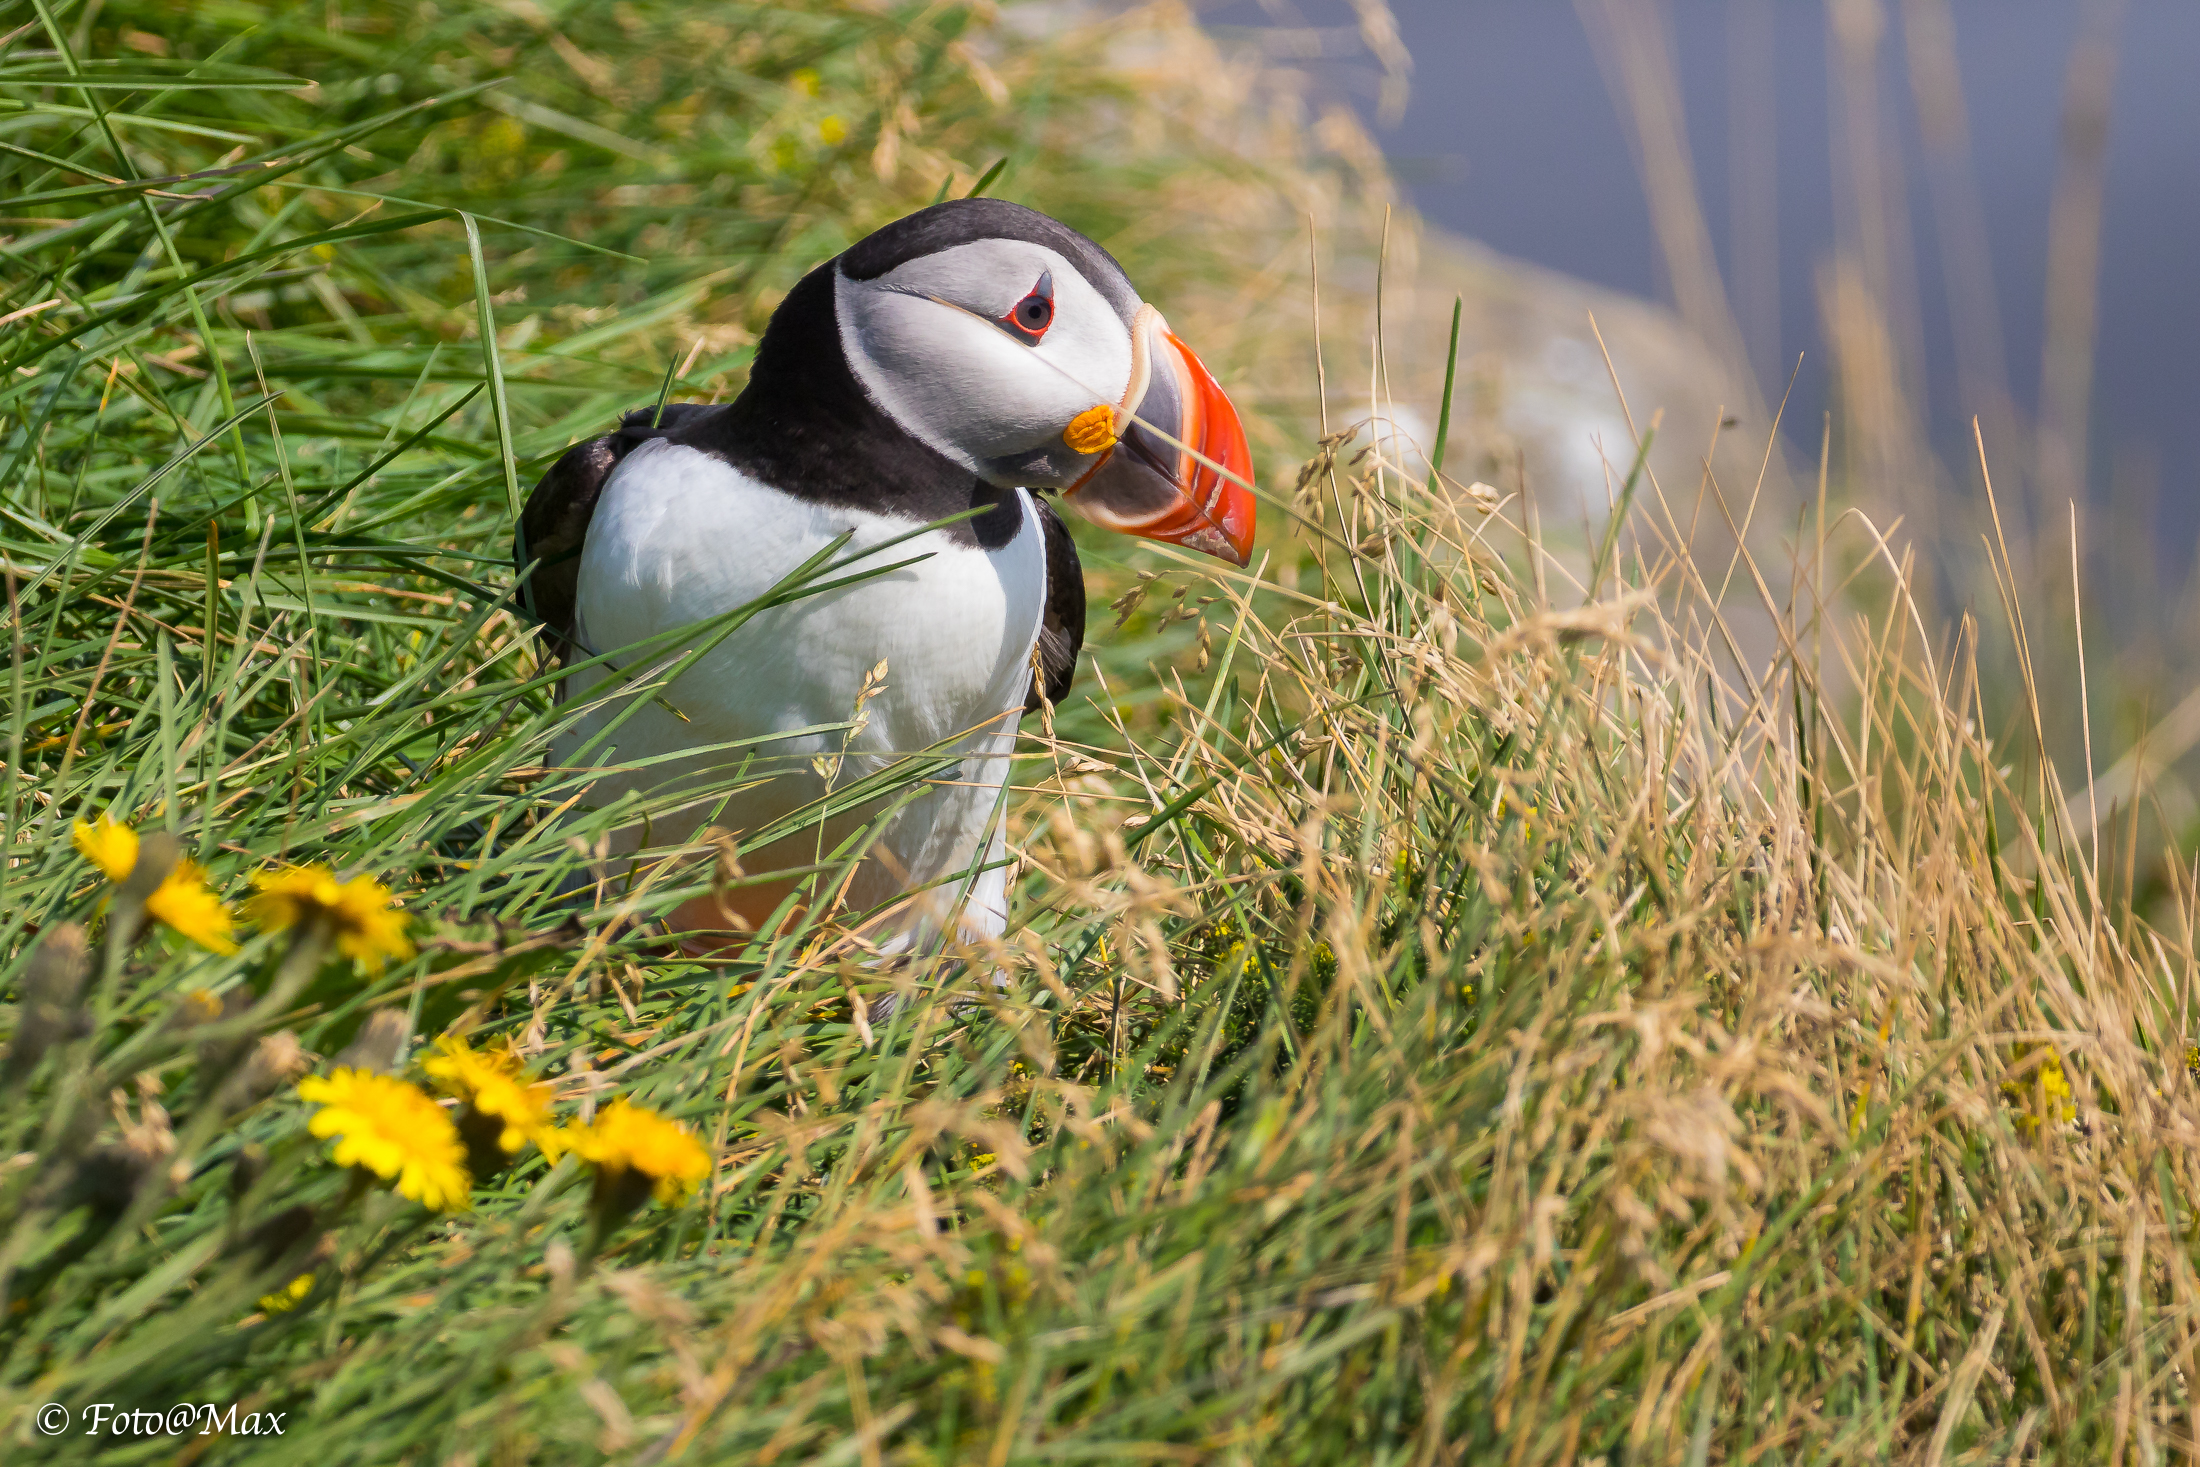 The Adorable Puffin ...